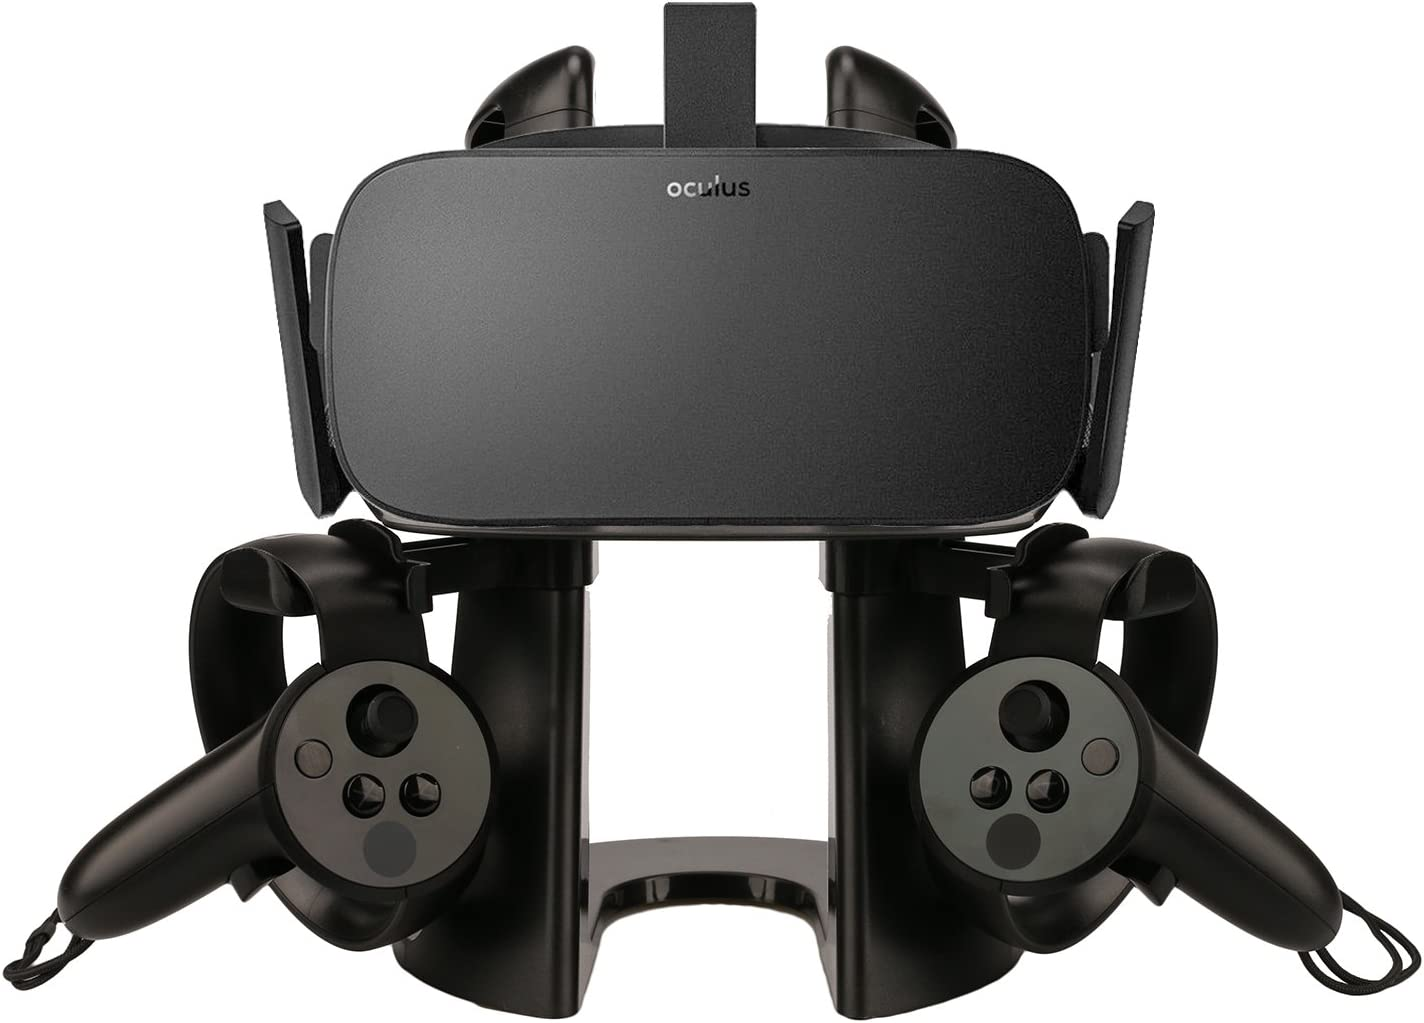 AMVR VR Stand, Headset Display Holder for Oculus Rift Headset and Touch Controller